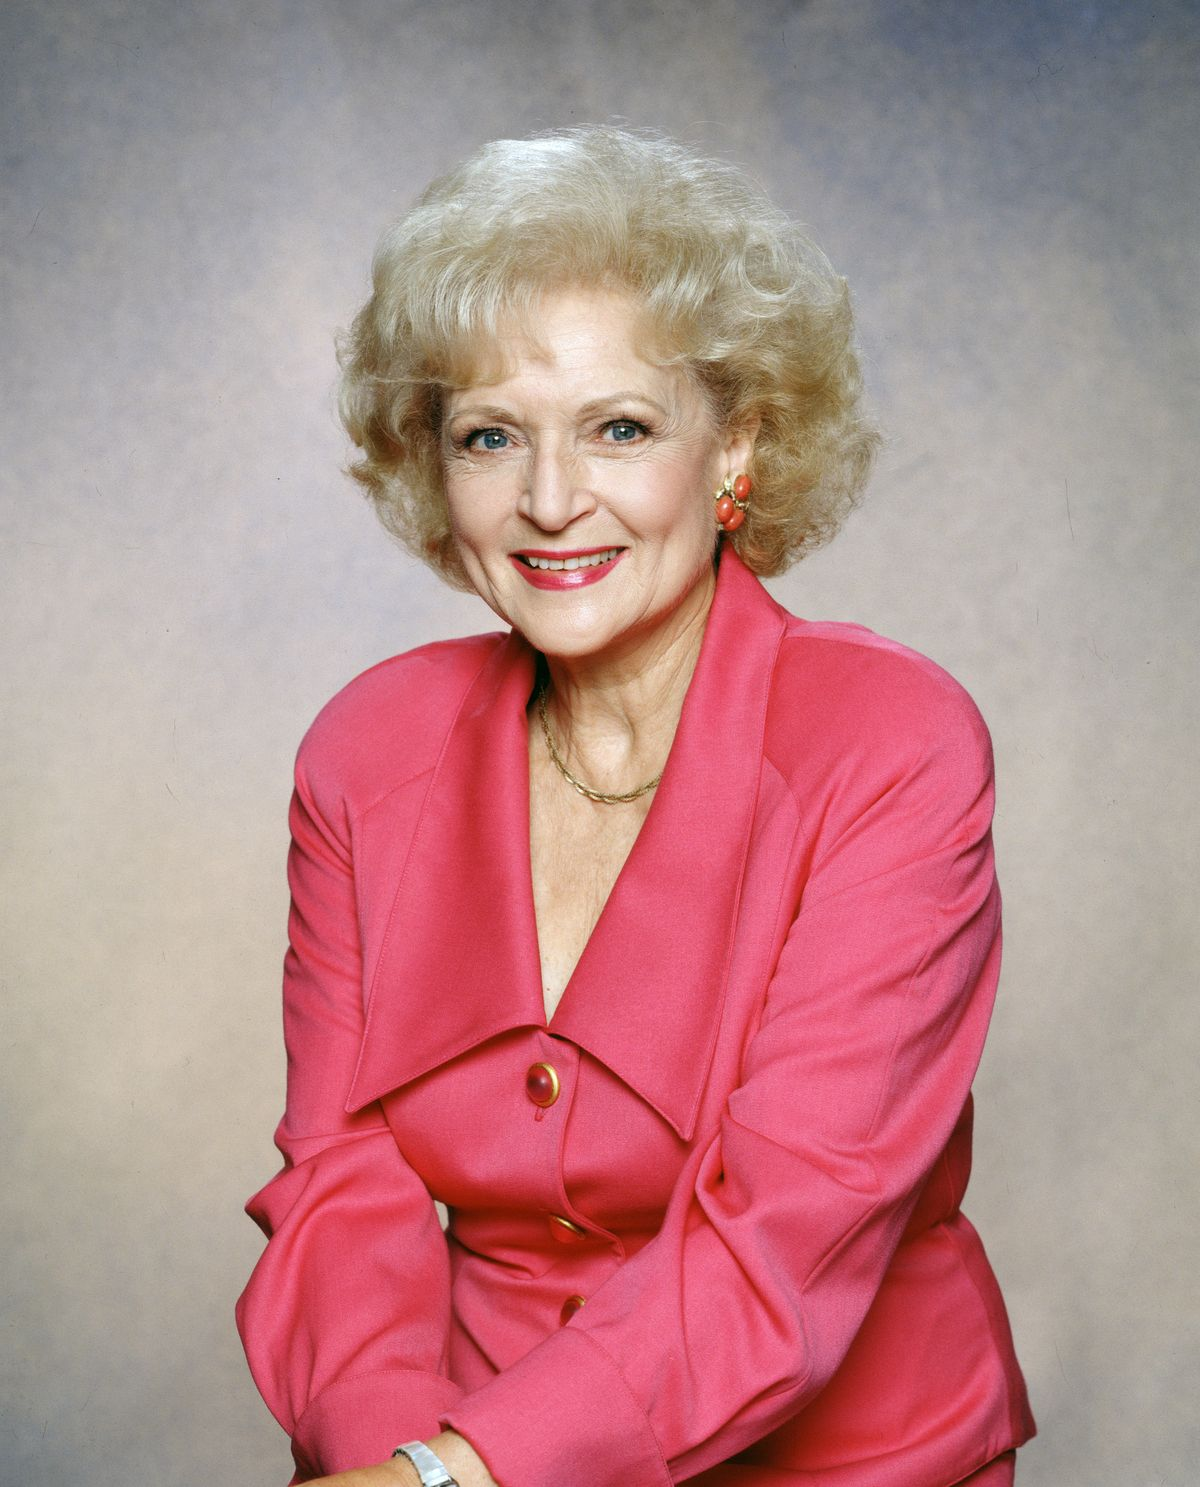 """Betty White poses for a photo as Rose Nylund in """"The Golden Palace"""" on January 1992.   Photo: Getty Images"""